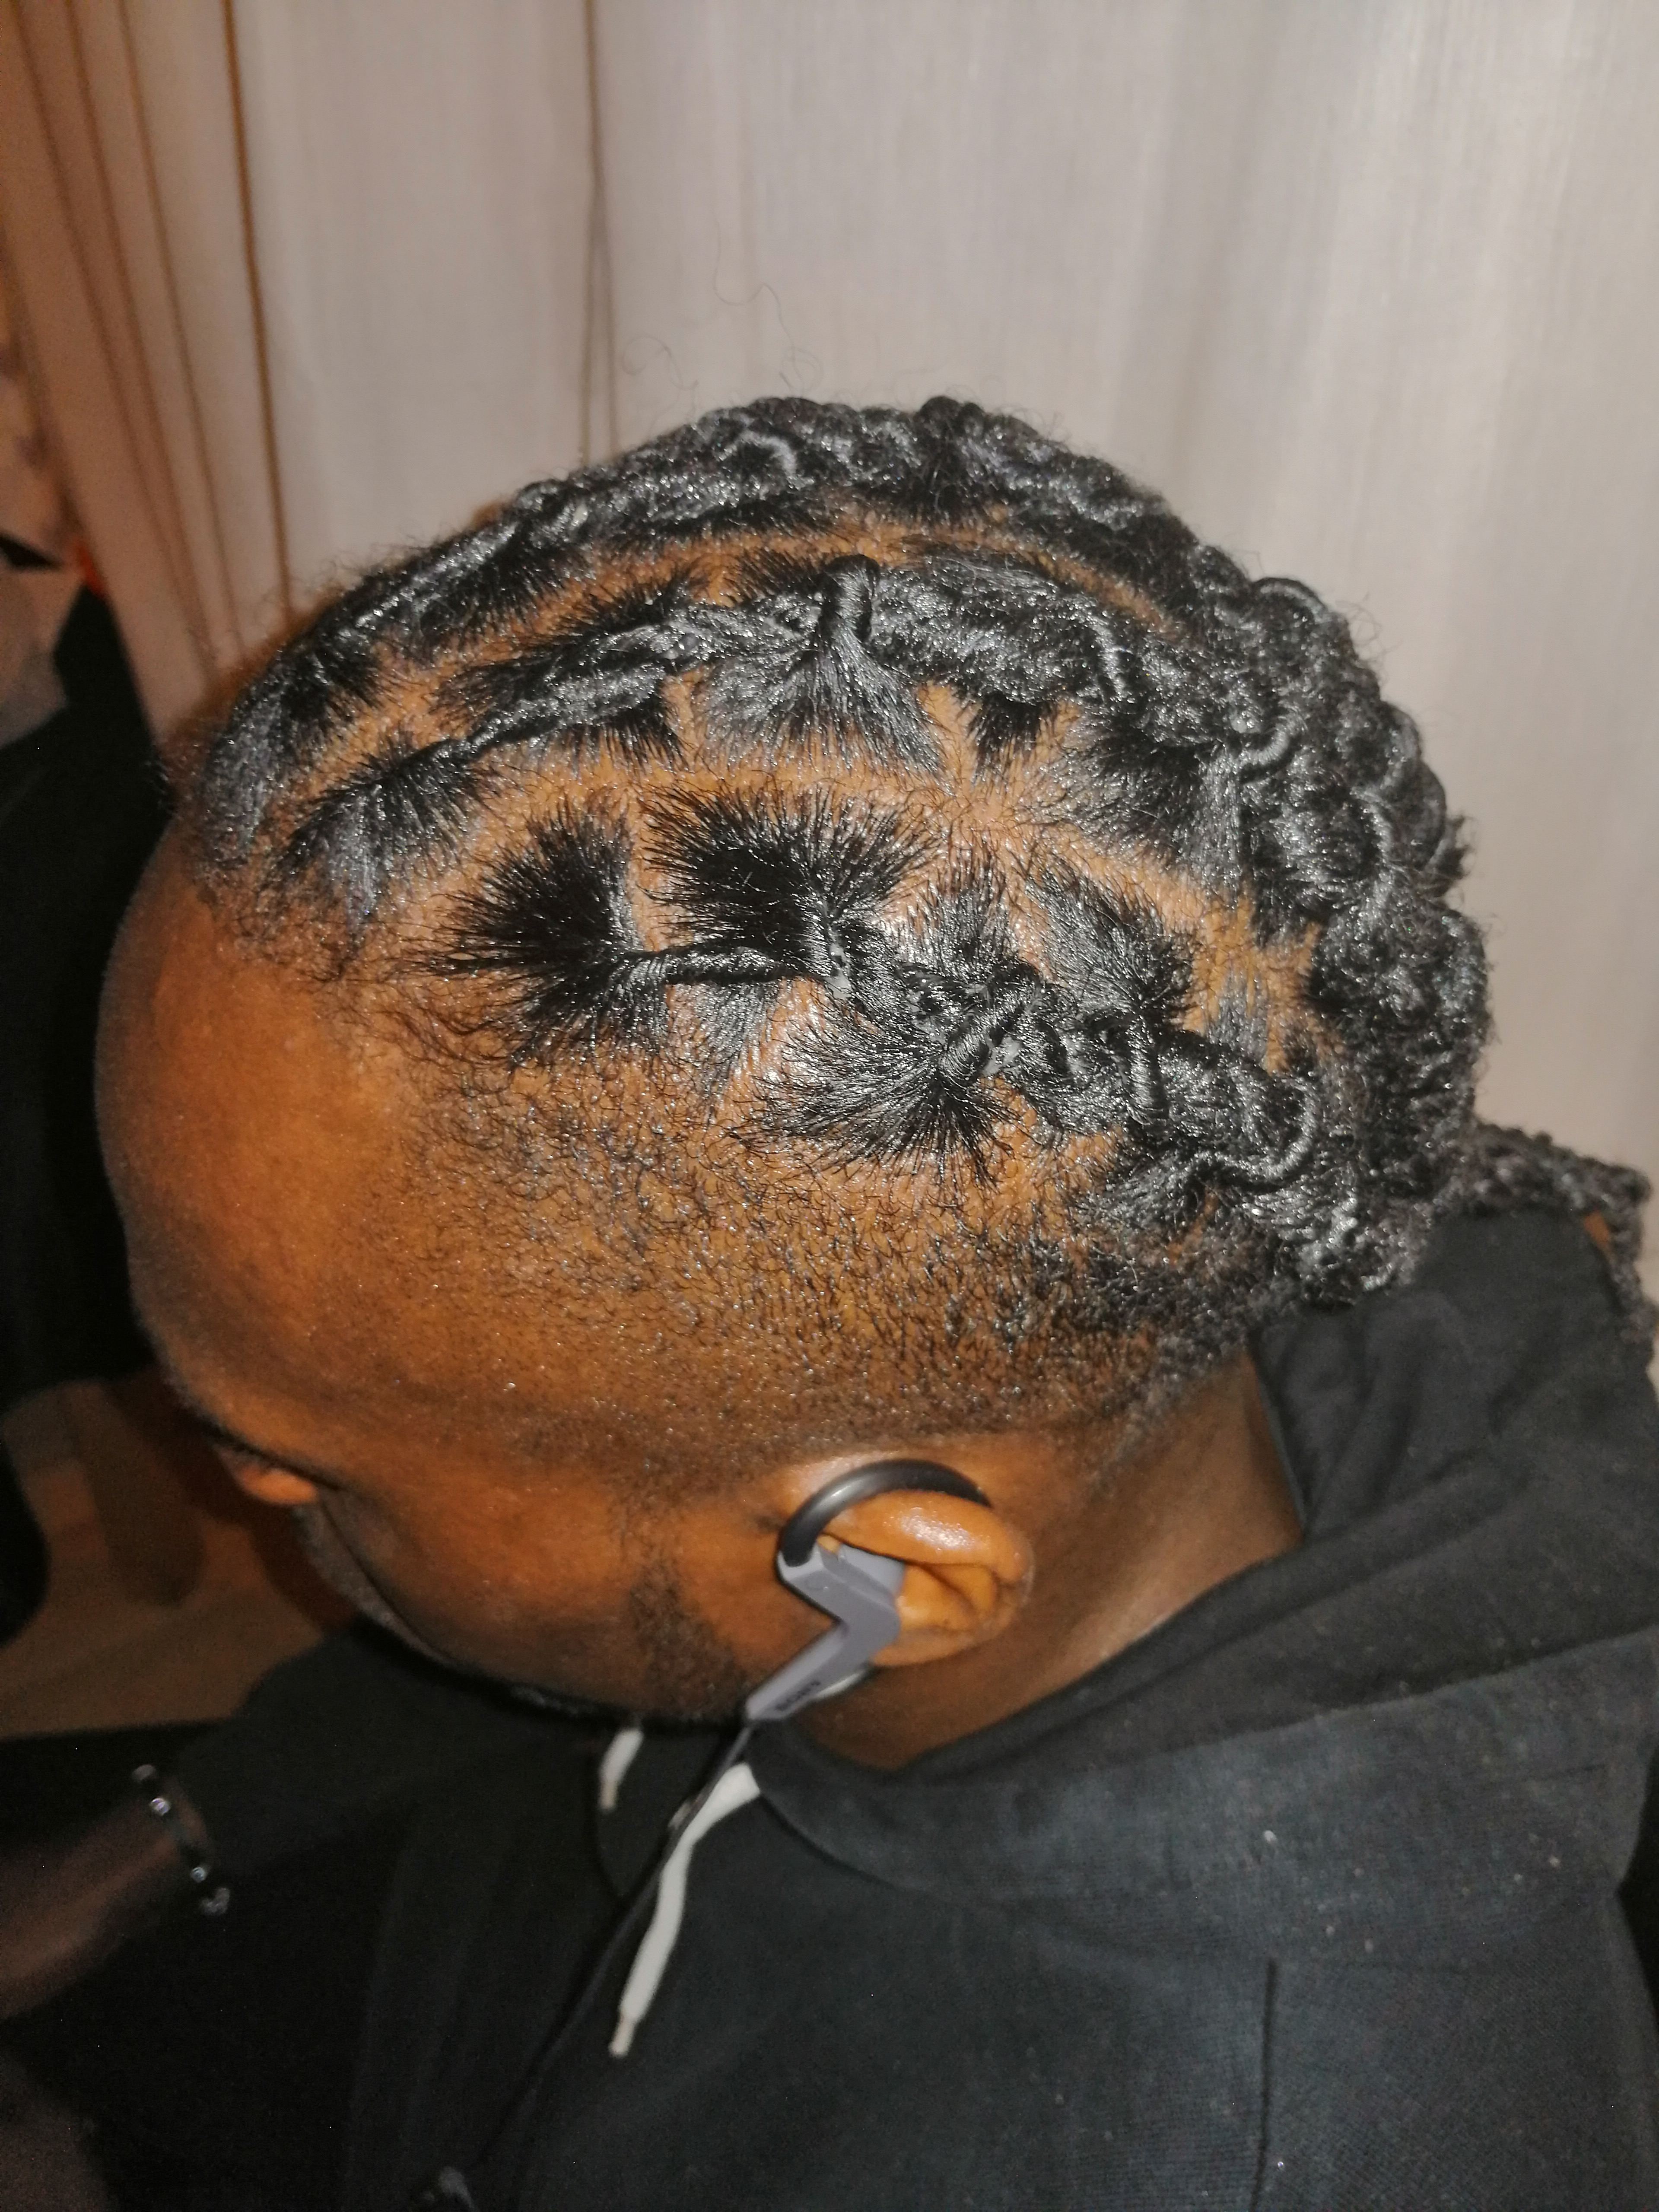 salon de coiffure afro tresse tresses box braids crochet braids vanilles tissages paris 75 77 78 91 92 93 94 95 UWFXDYMG